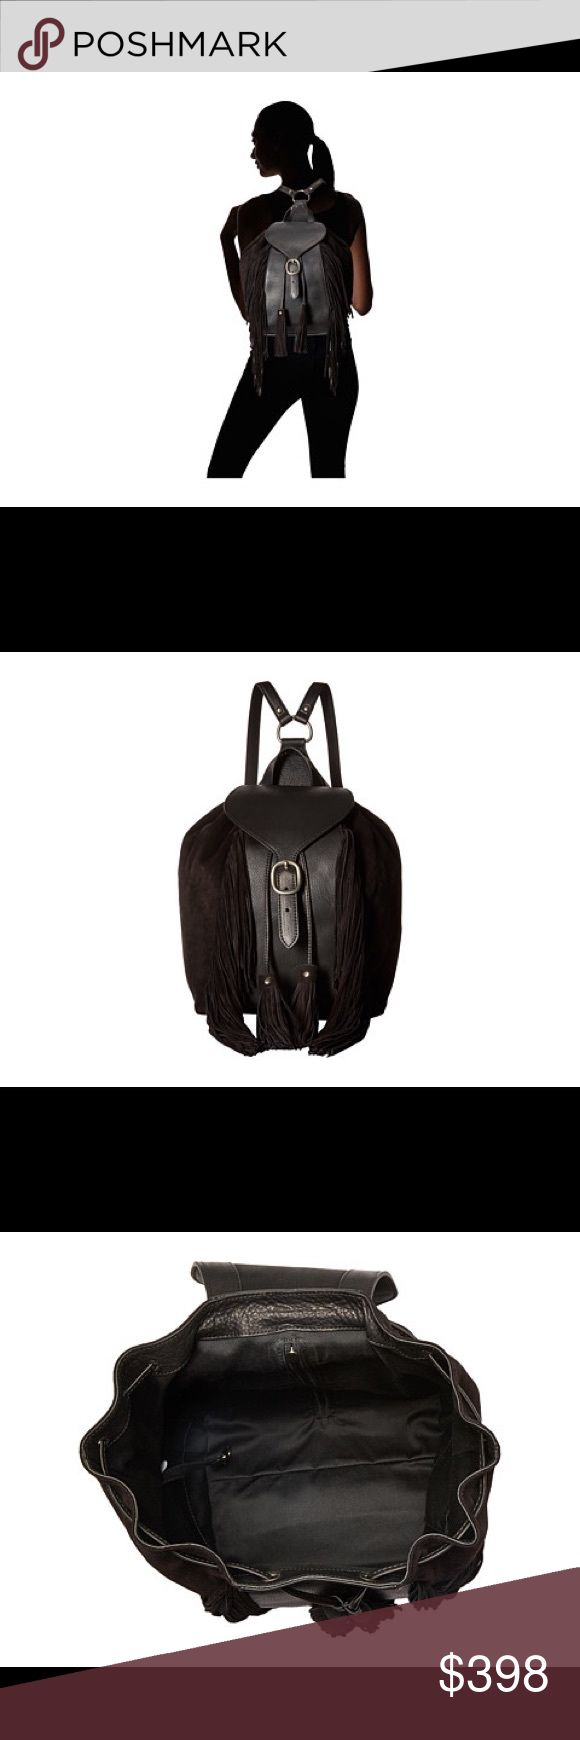 NWT Frye Clara fringe backpack  Frye quality black leather and suede backpack  The Frye® Clara Fringe Backpack mixes fashion and functionality that makes this an ideal backpack for the office and the weekend. Soft vintage Italian leather and suede backpack. Features beautiful fringe and tassel detail for a touch of style. Two leather shoulder straps with adjustable metal buckles. Interior fabric lining with leather strap and key clip. Front metal buckle closure. Width: 9 in Depth: 5 in…